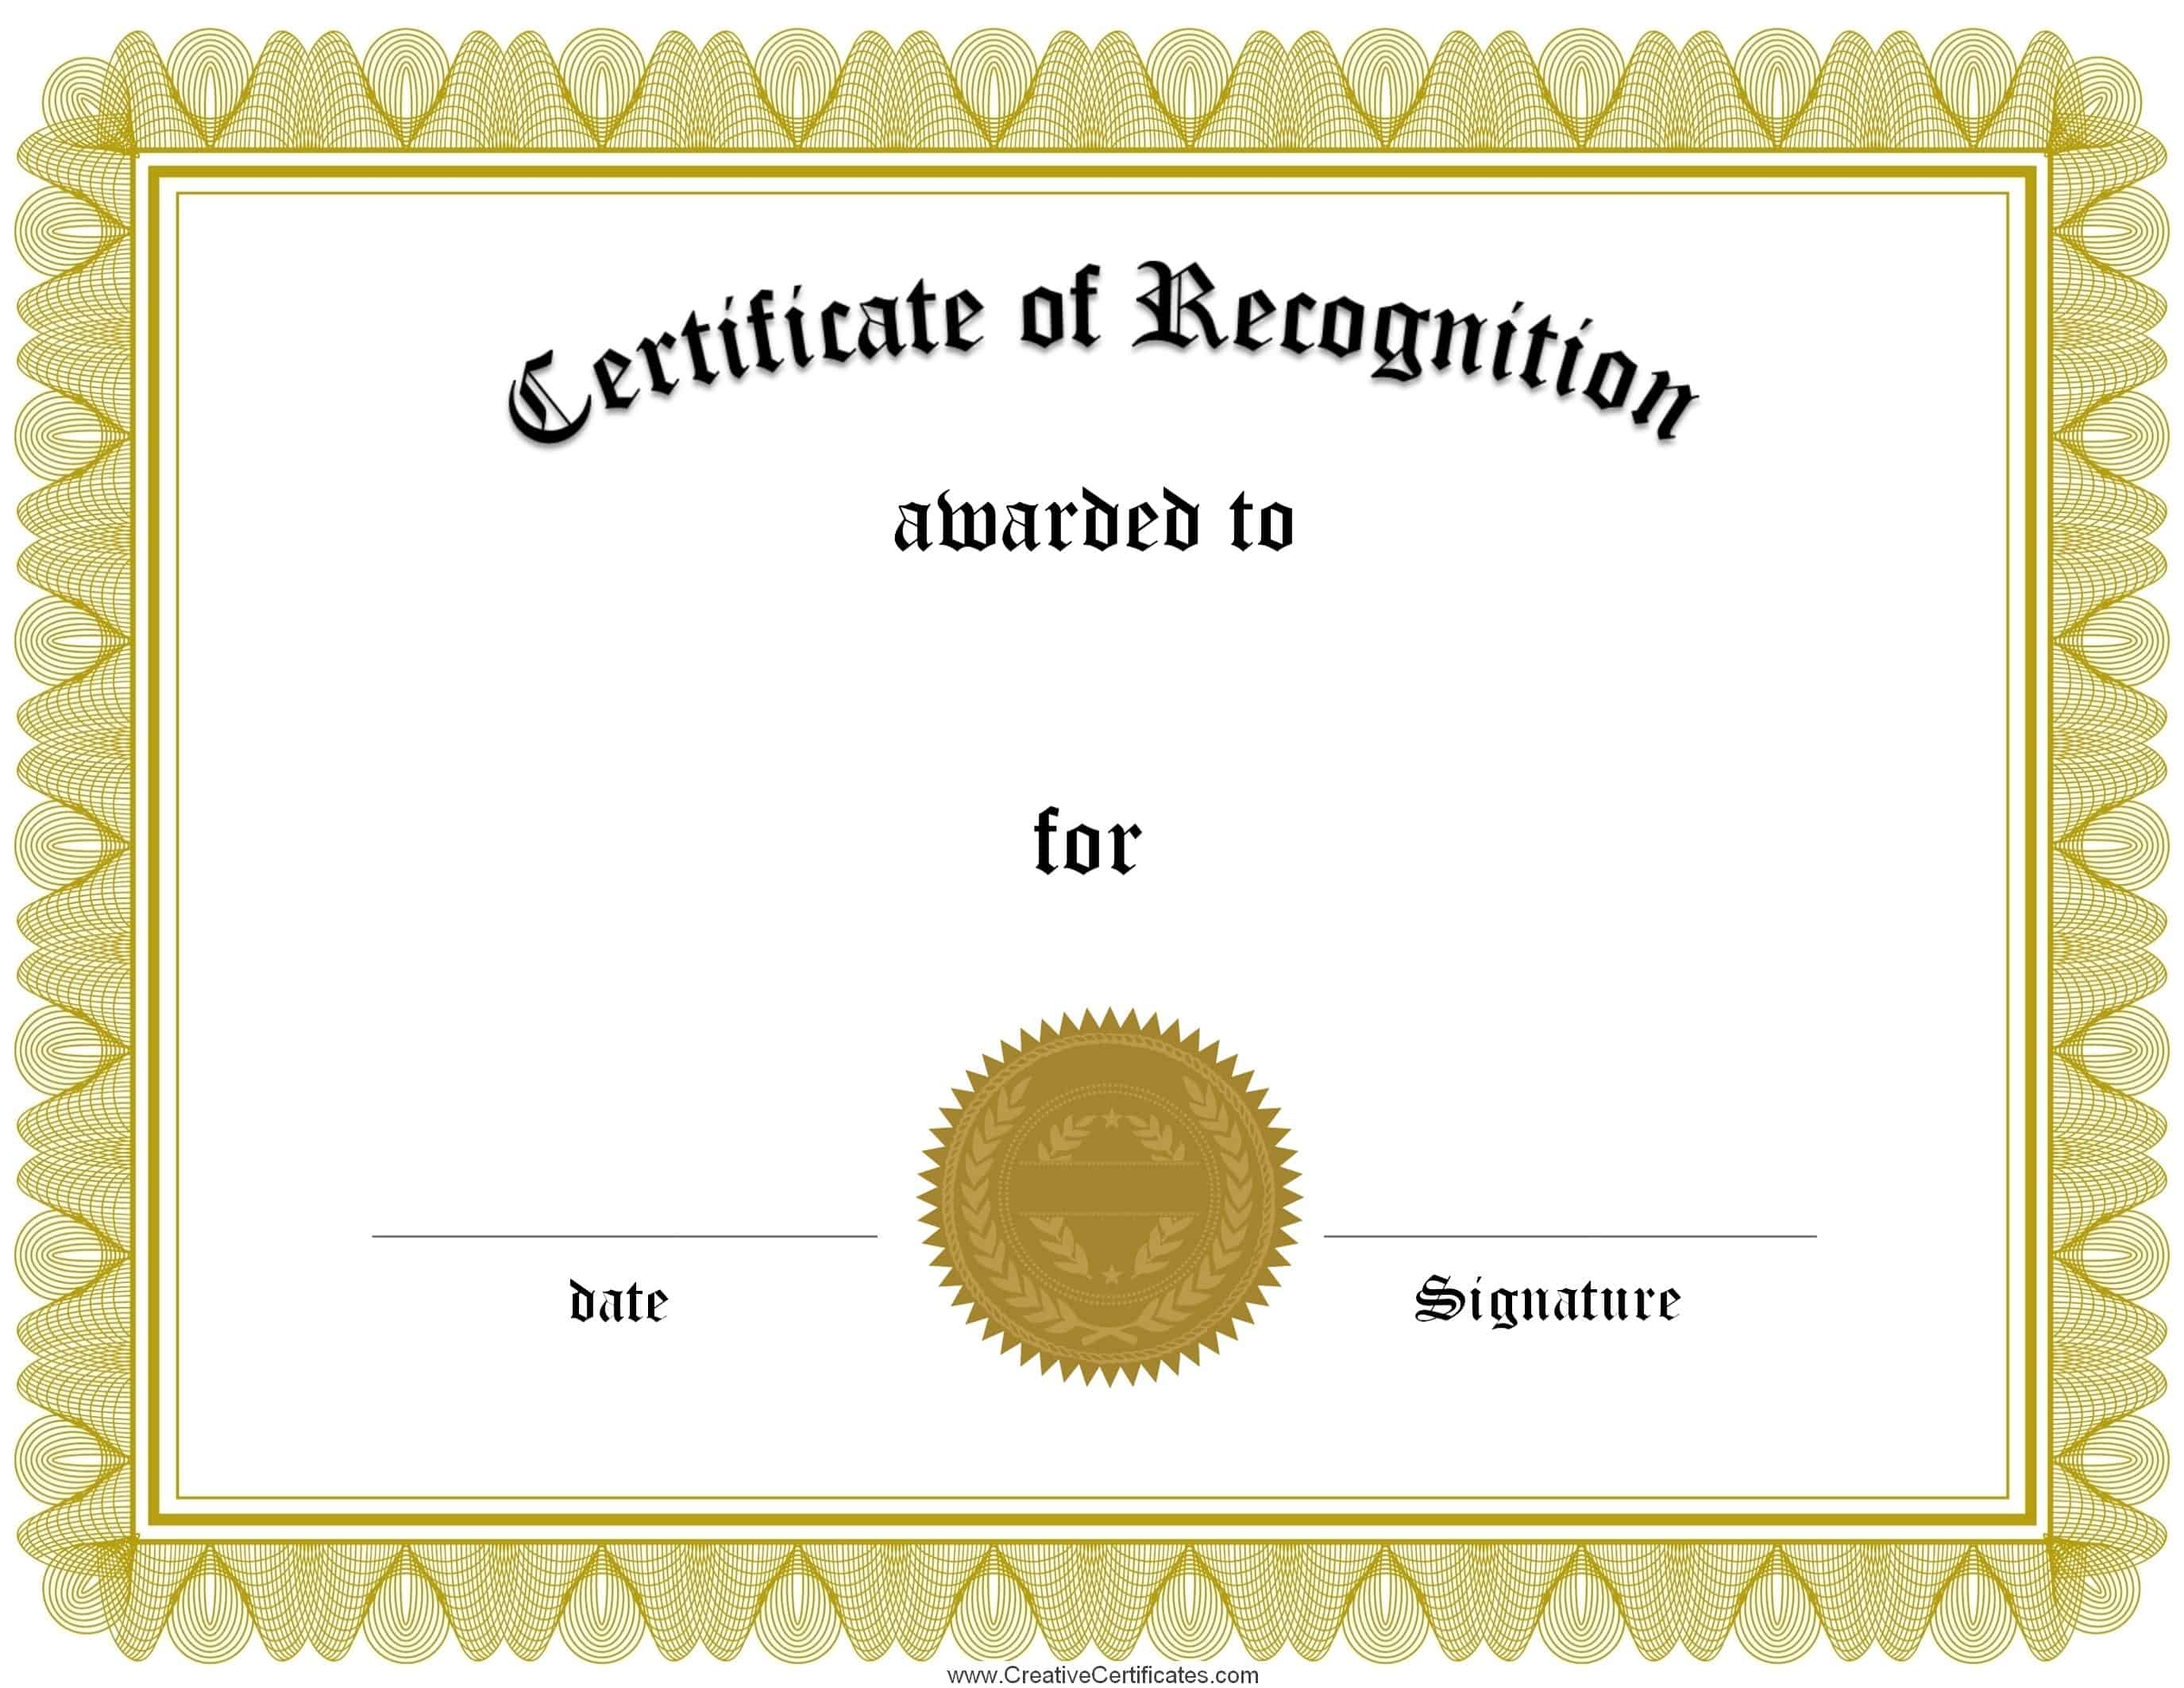 Certificate of recognition template hatchurbanskript certificate of recognition template yelopaper Image collections